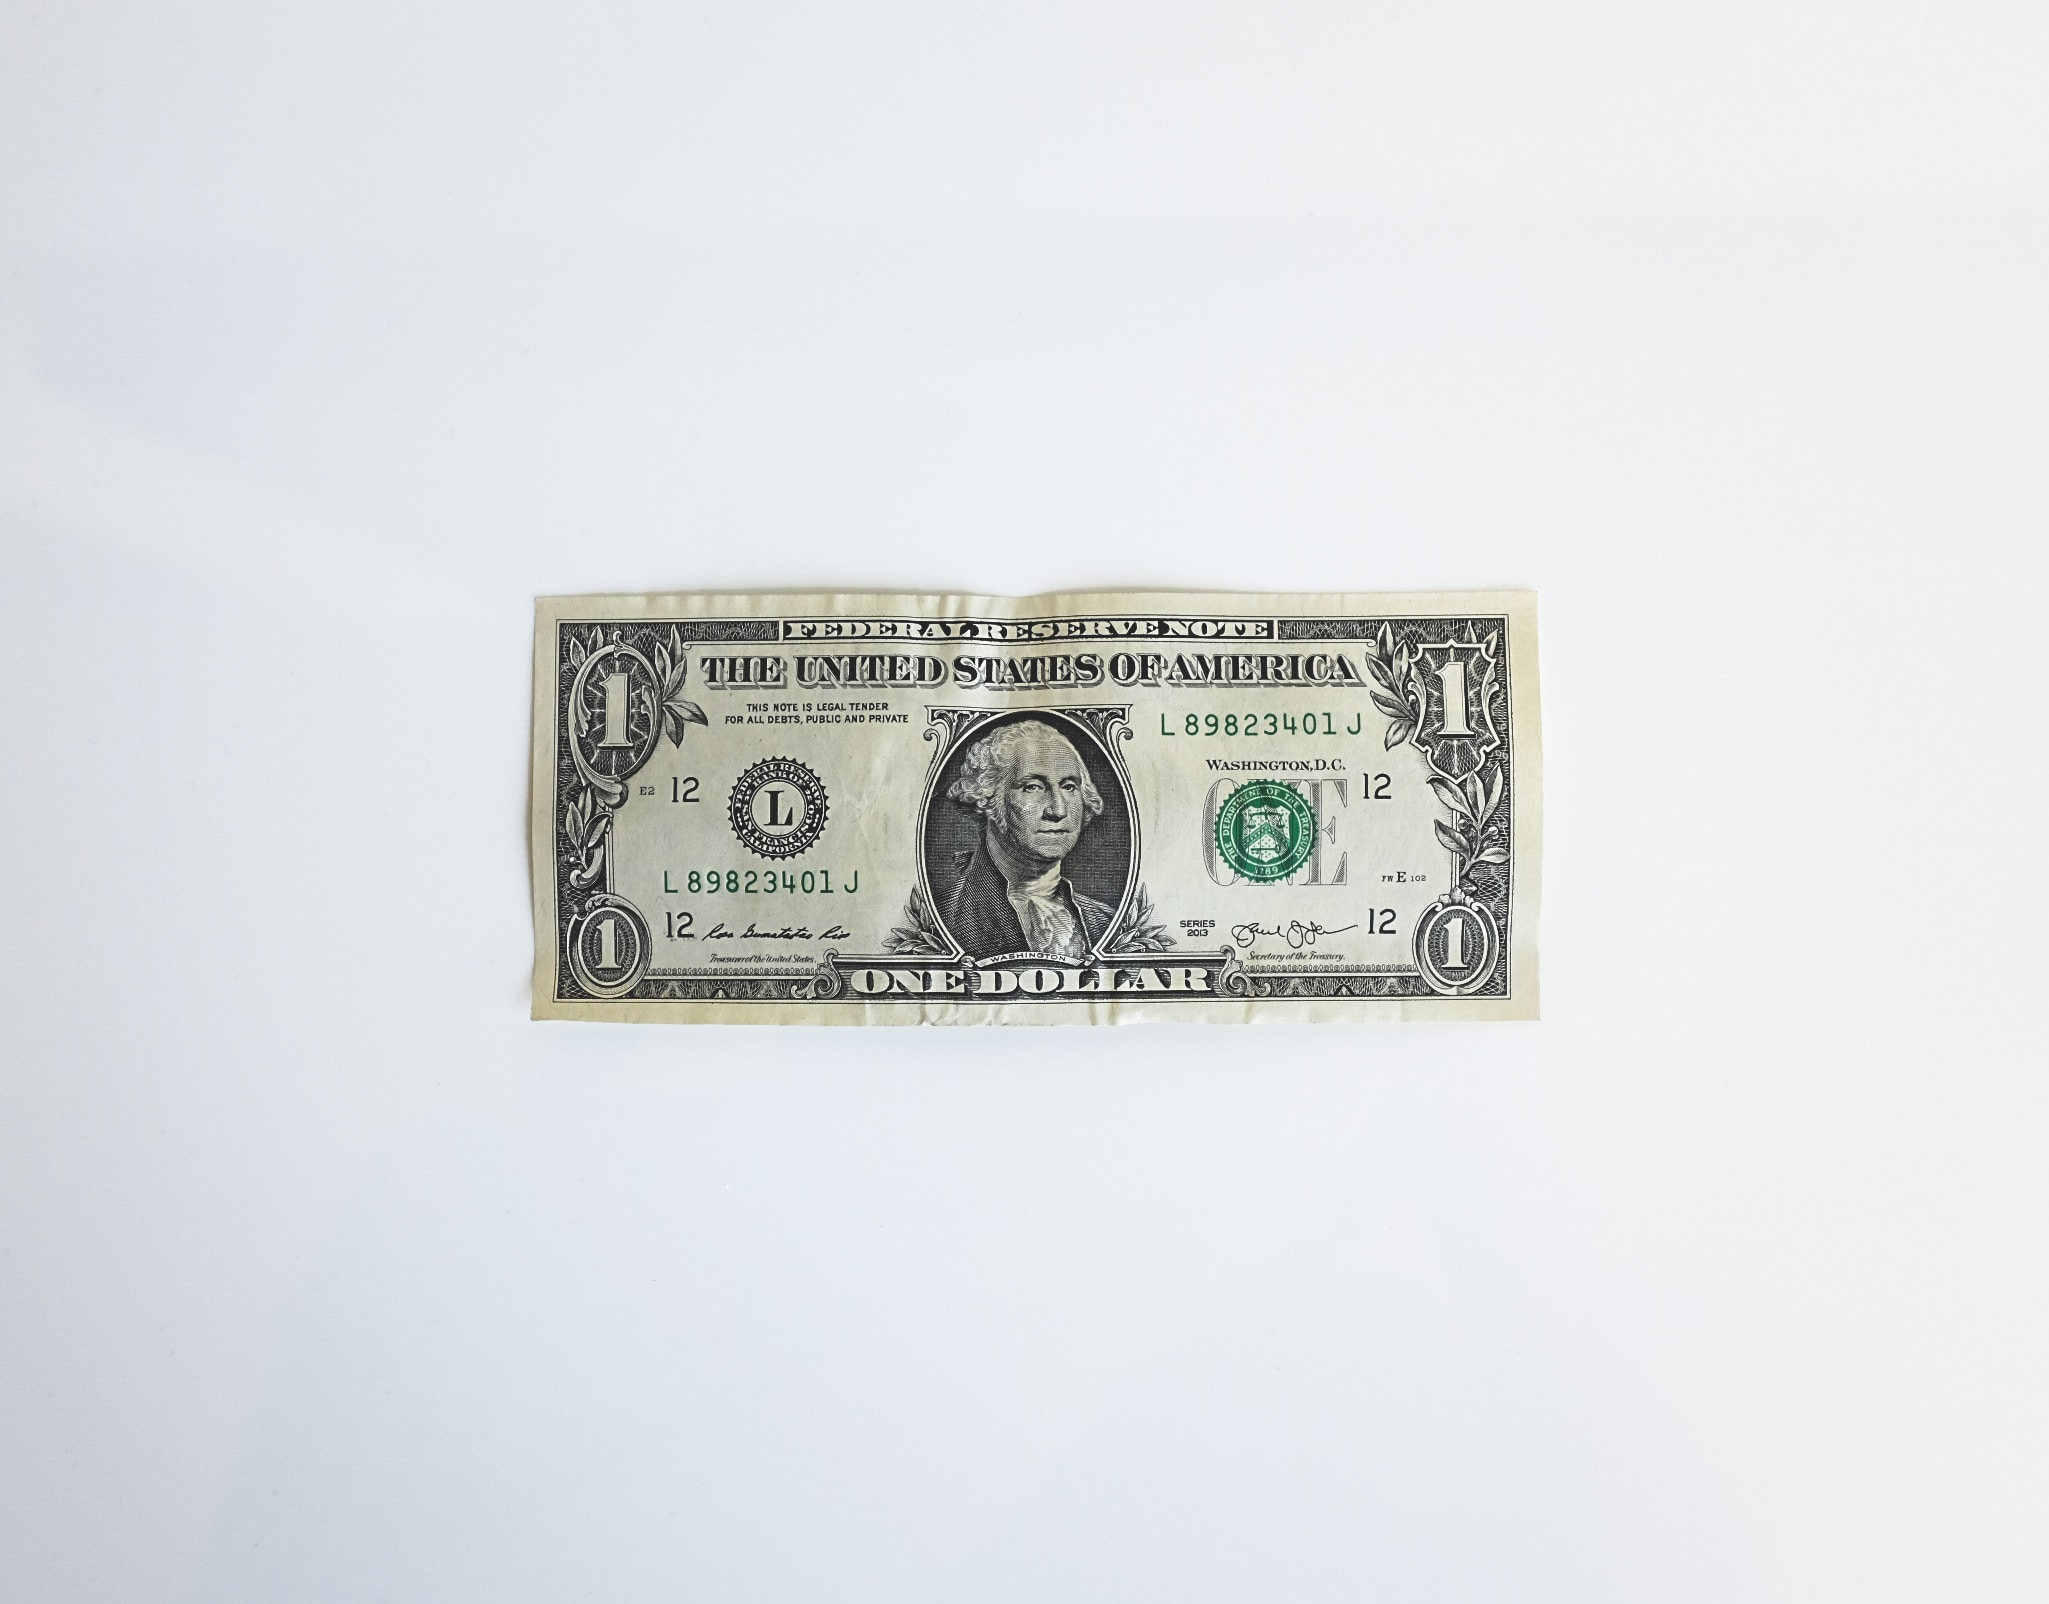 U.S. Dollar Bill- Money